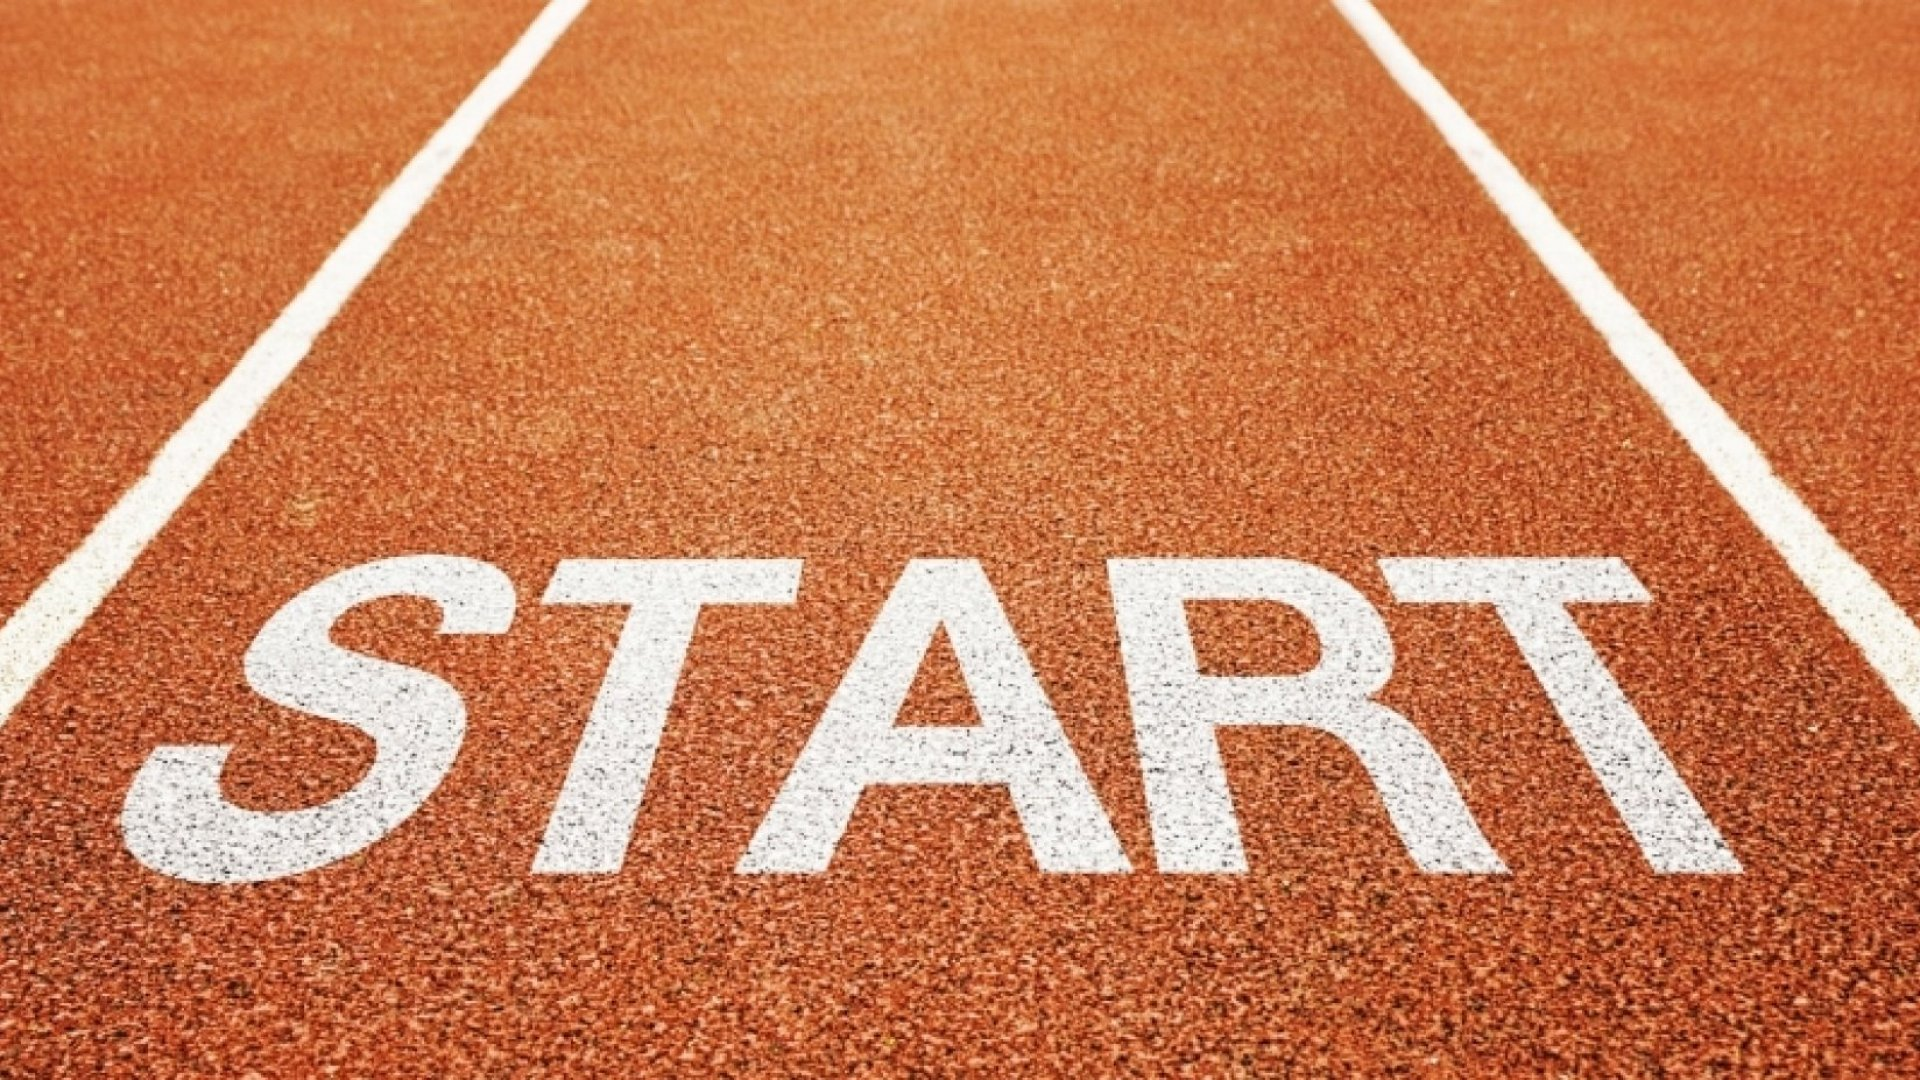 Why Wait to Start Your Dream Business? Do It Today!